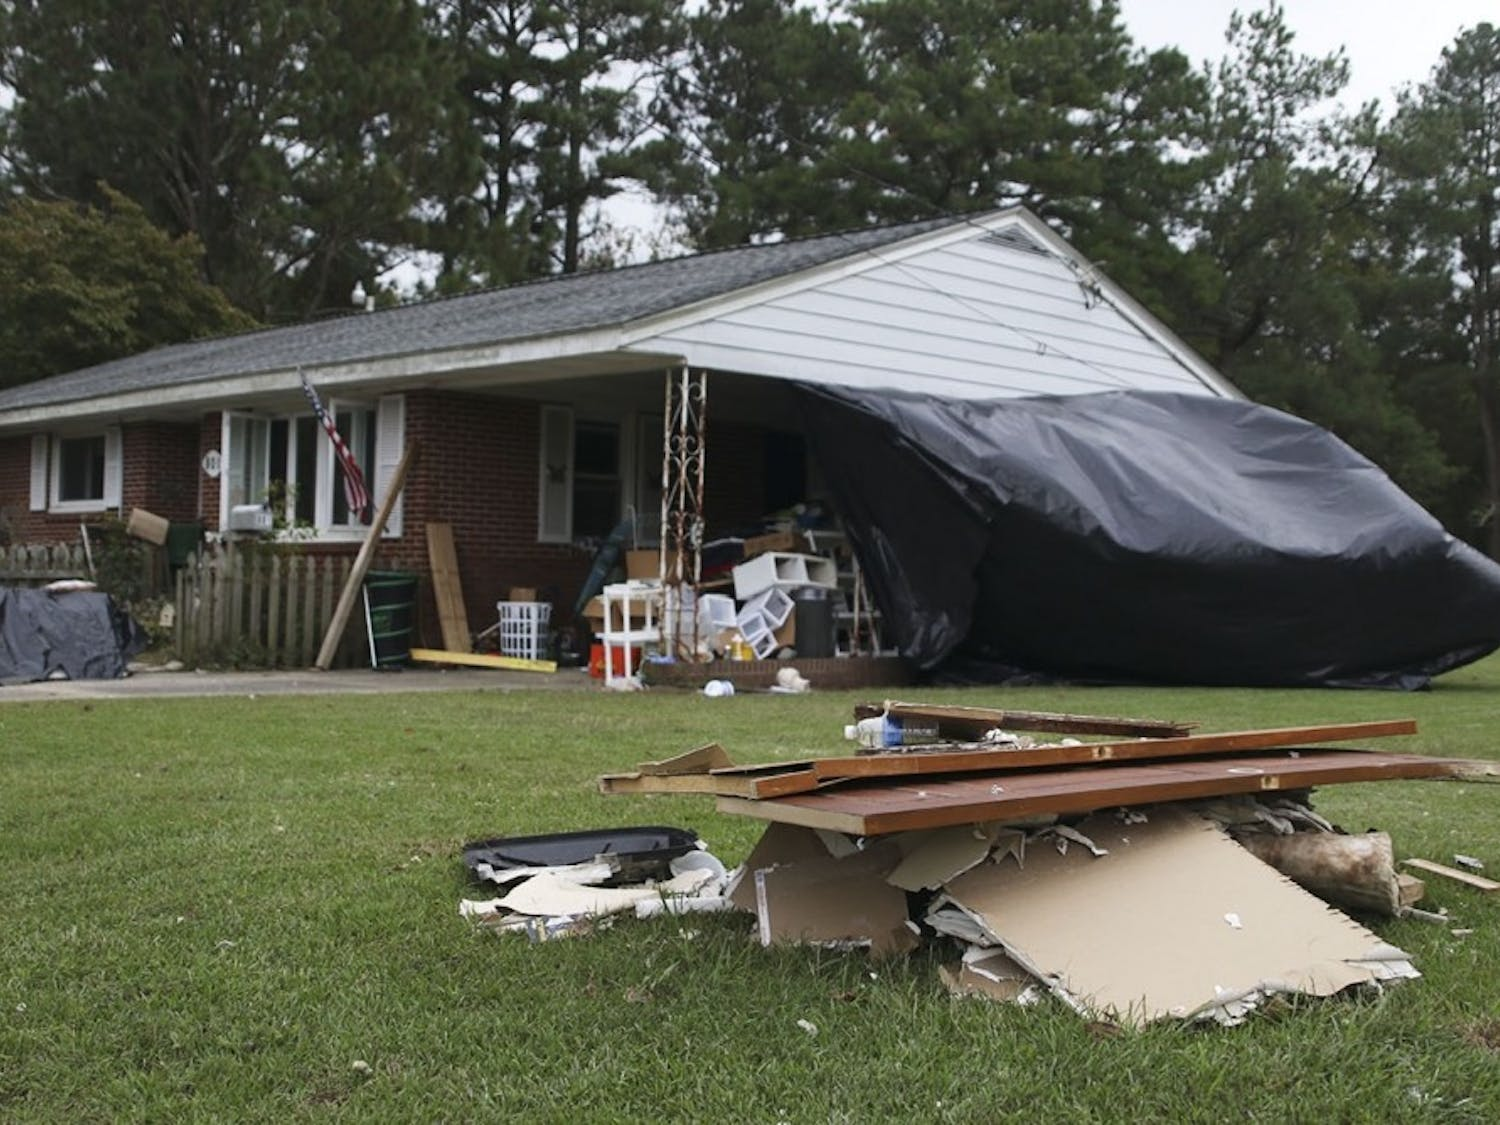 A home in Windsor airs out along with all its contents after it was hit in 2016 by Hurricane Matthew.